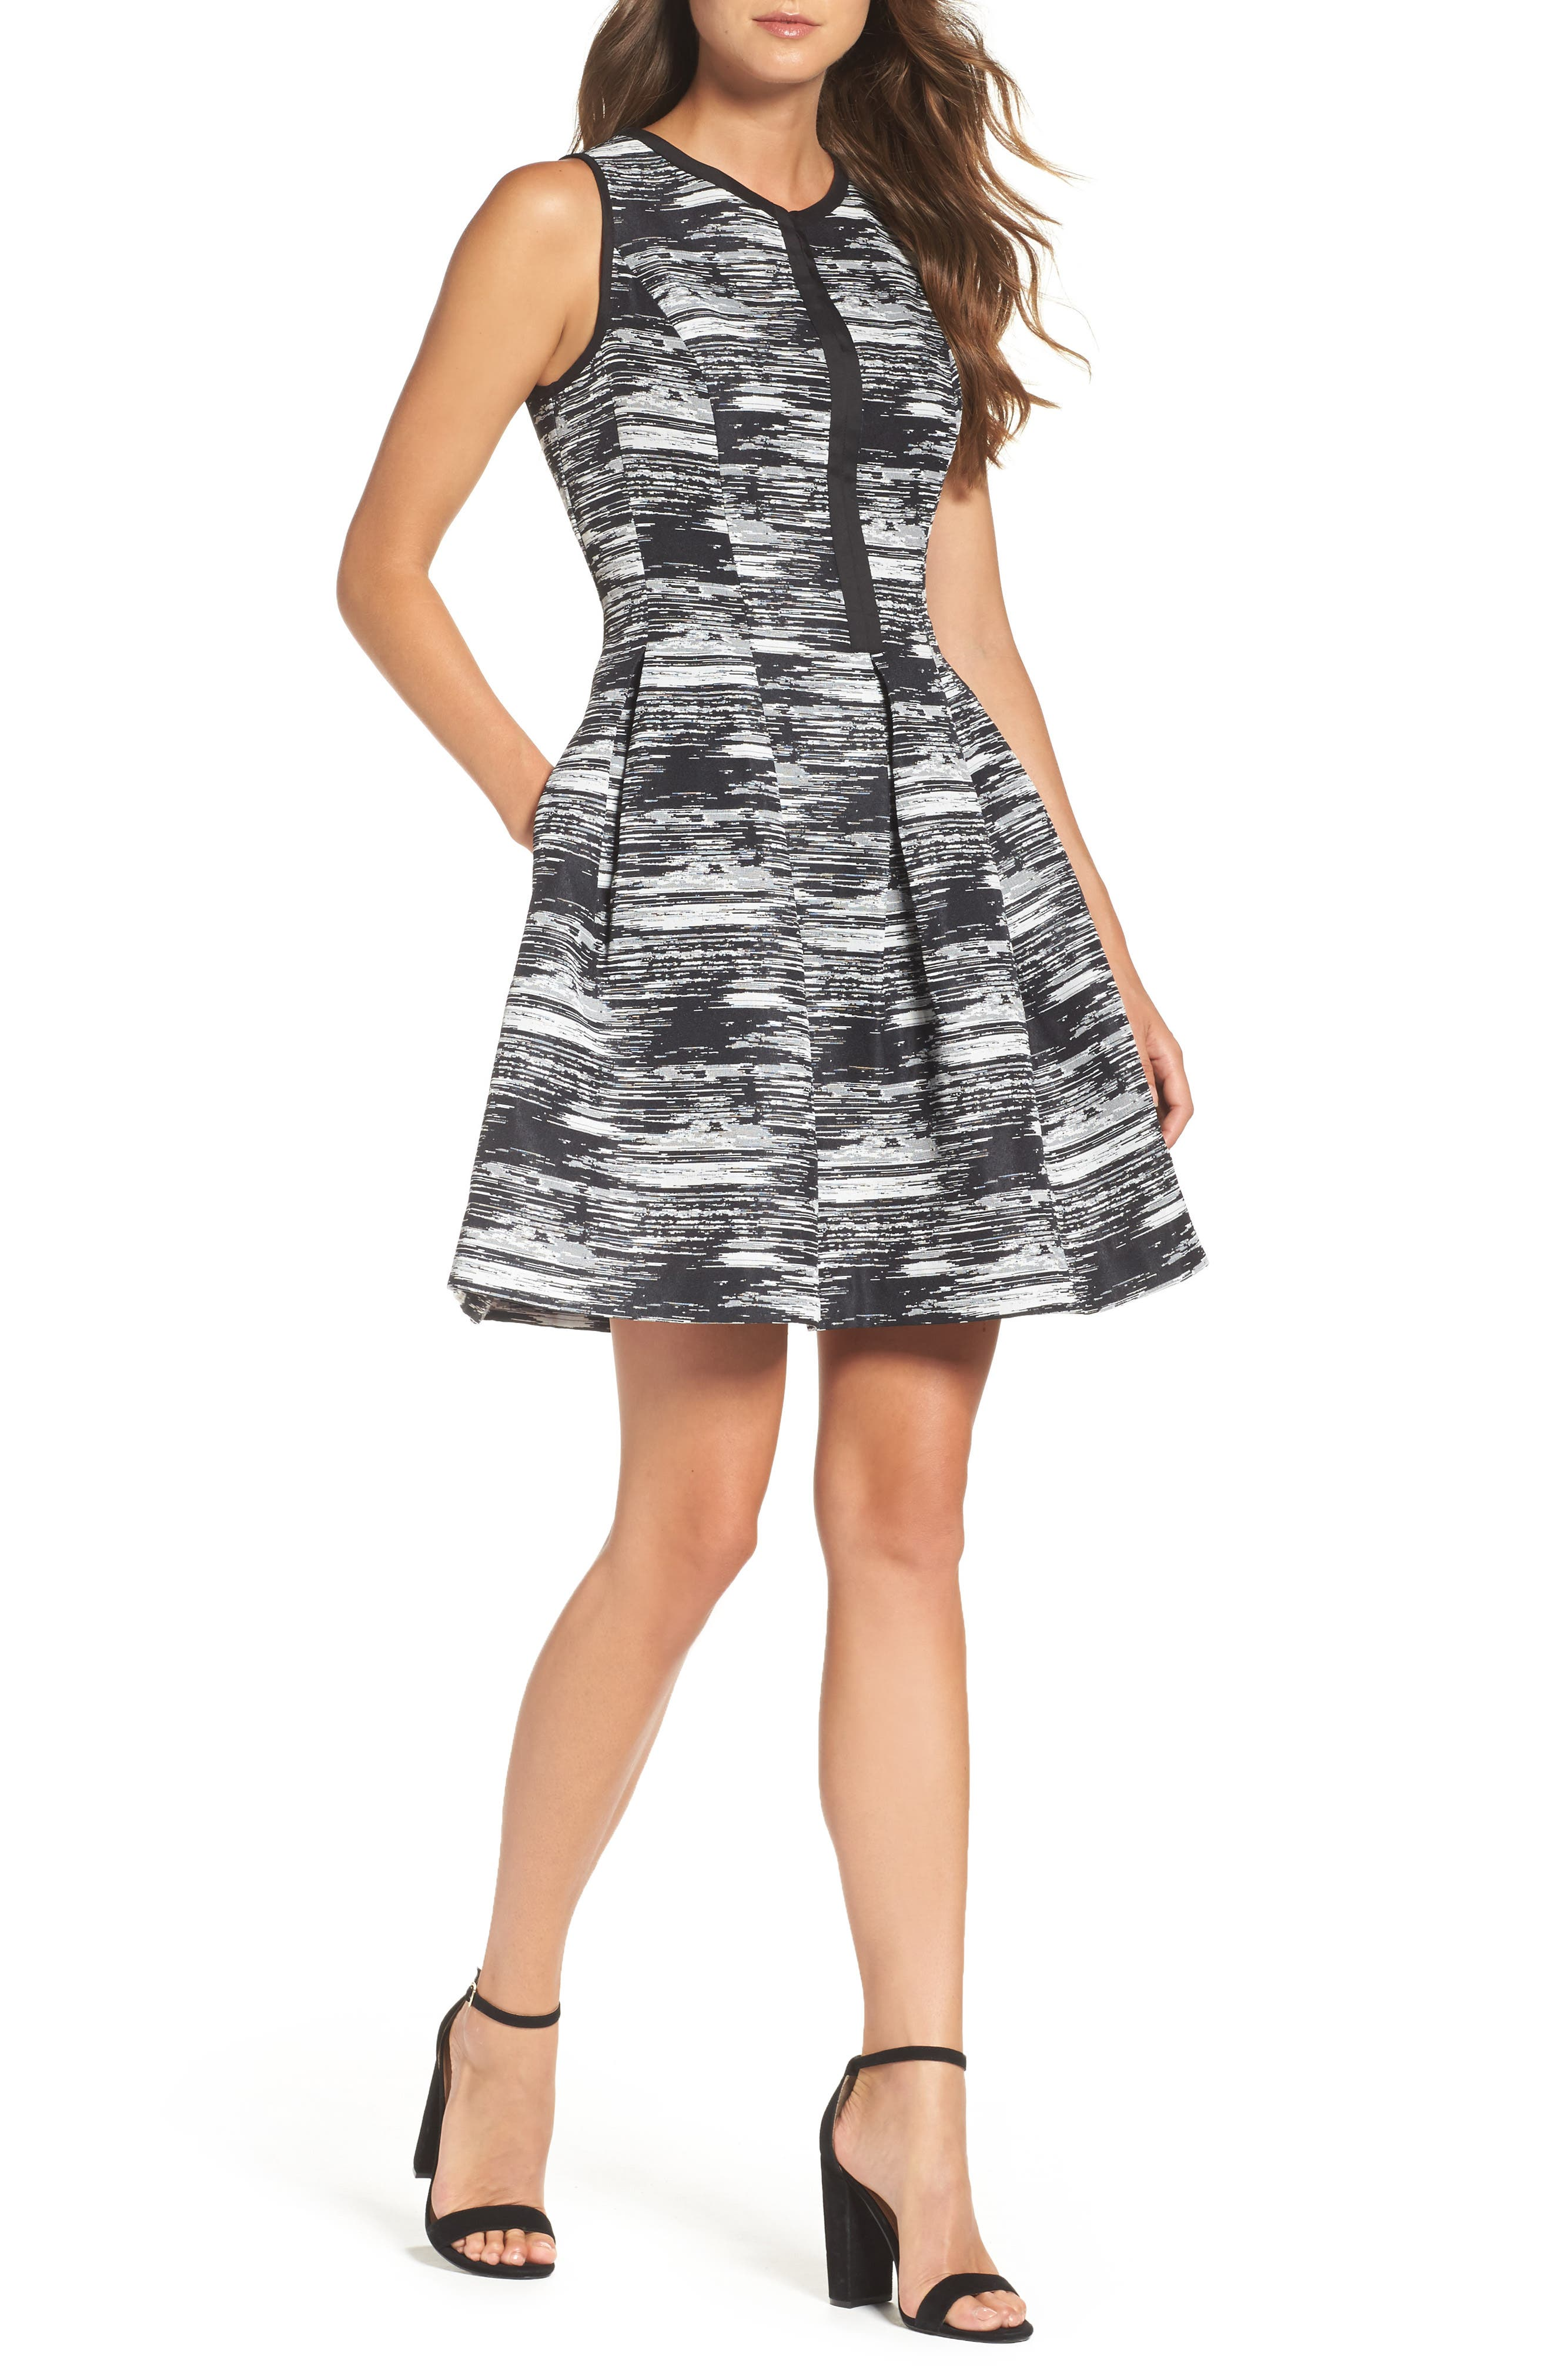 Alternate Image 1 Selected - Vince Camuto Jacquard Fit & Flare Dress